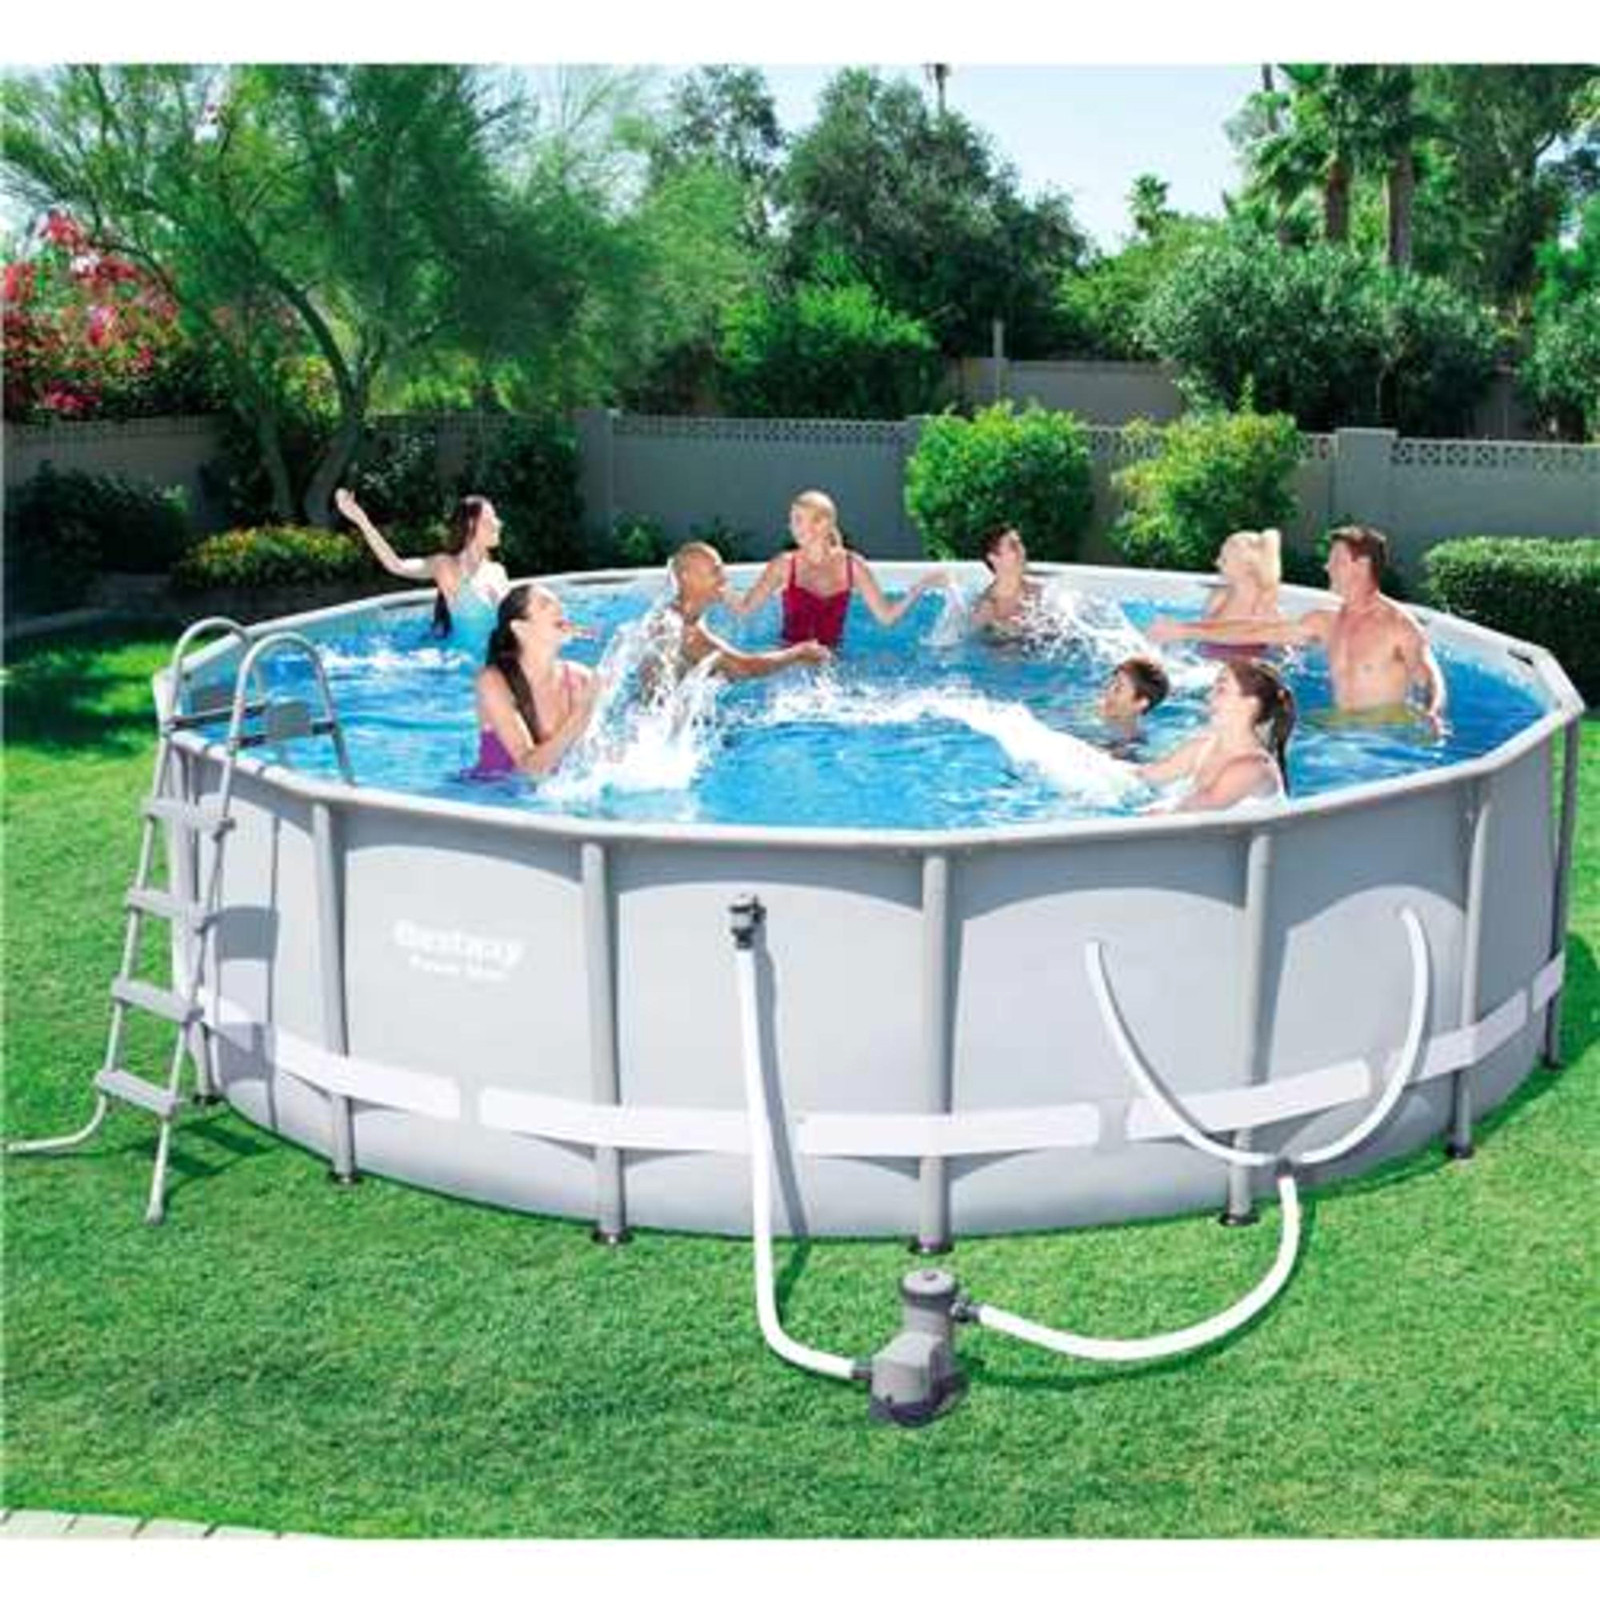 """Best ideas about Coleman Above Ground Pool Parts . Save or Pin Bestway 16 x 48"""" Steel Ground Pool Set Sears Now."""